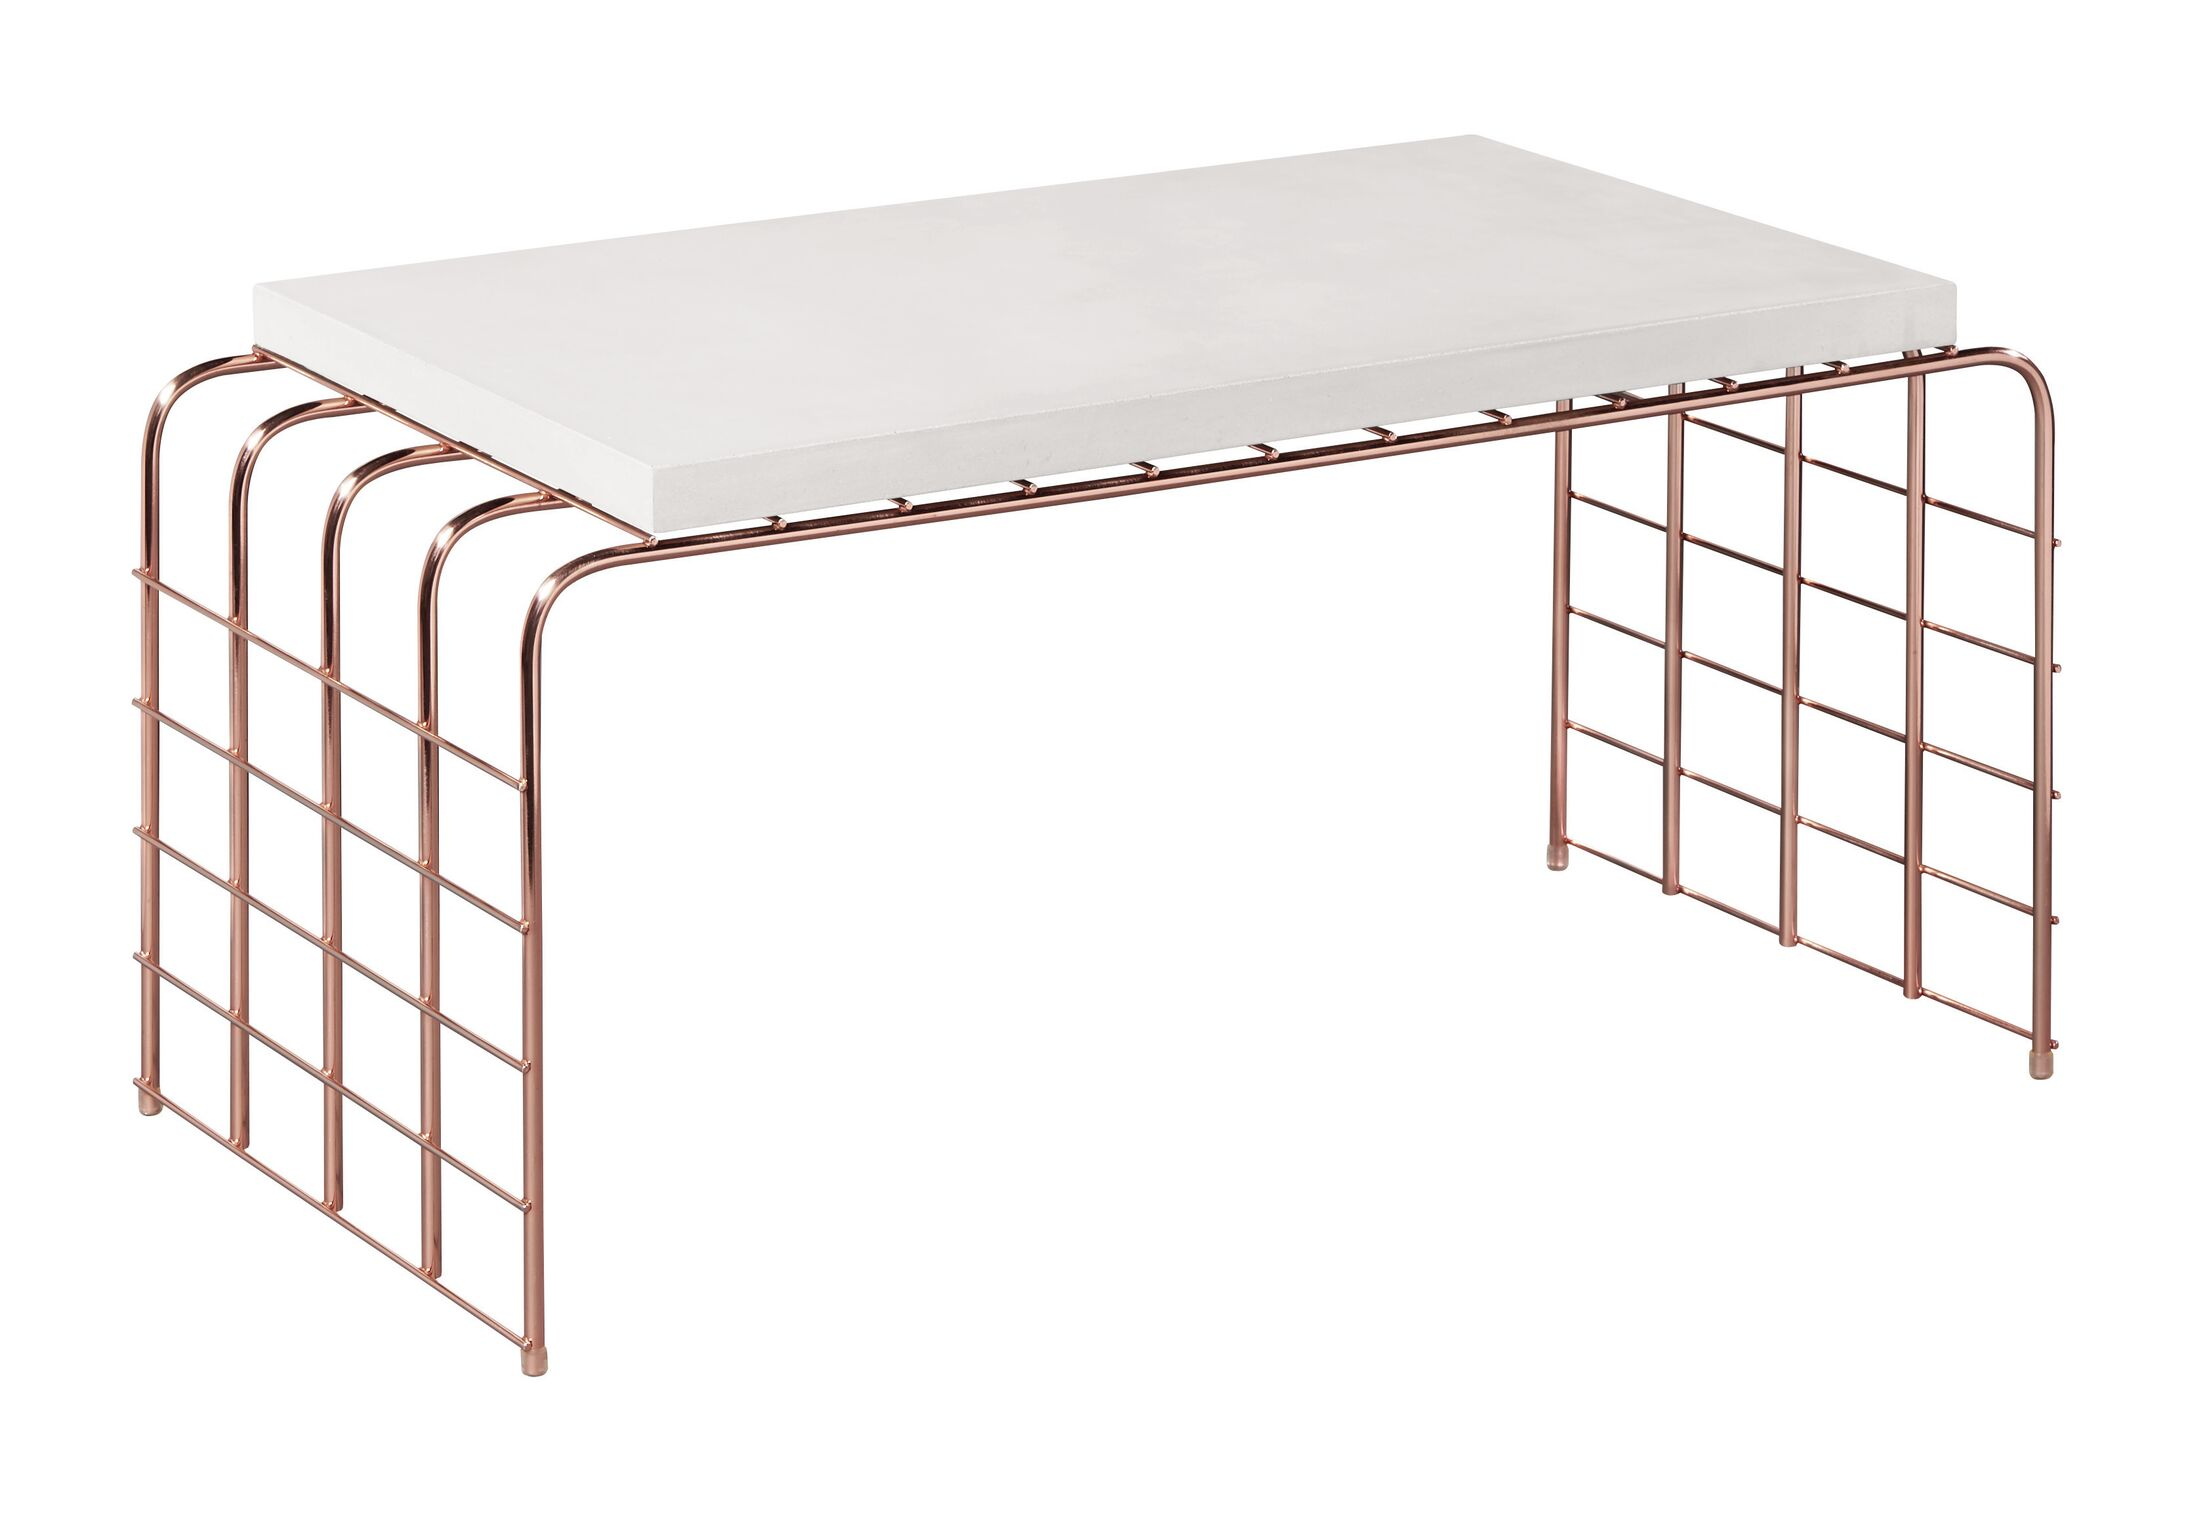 Perpetual Mesh Link Tall Steel Coffee Table Top Finish: Ivory White